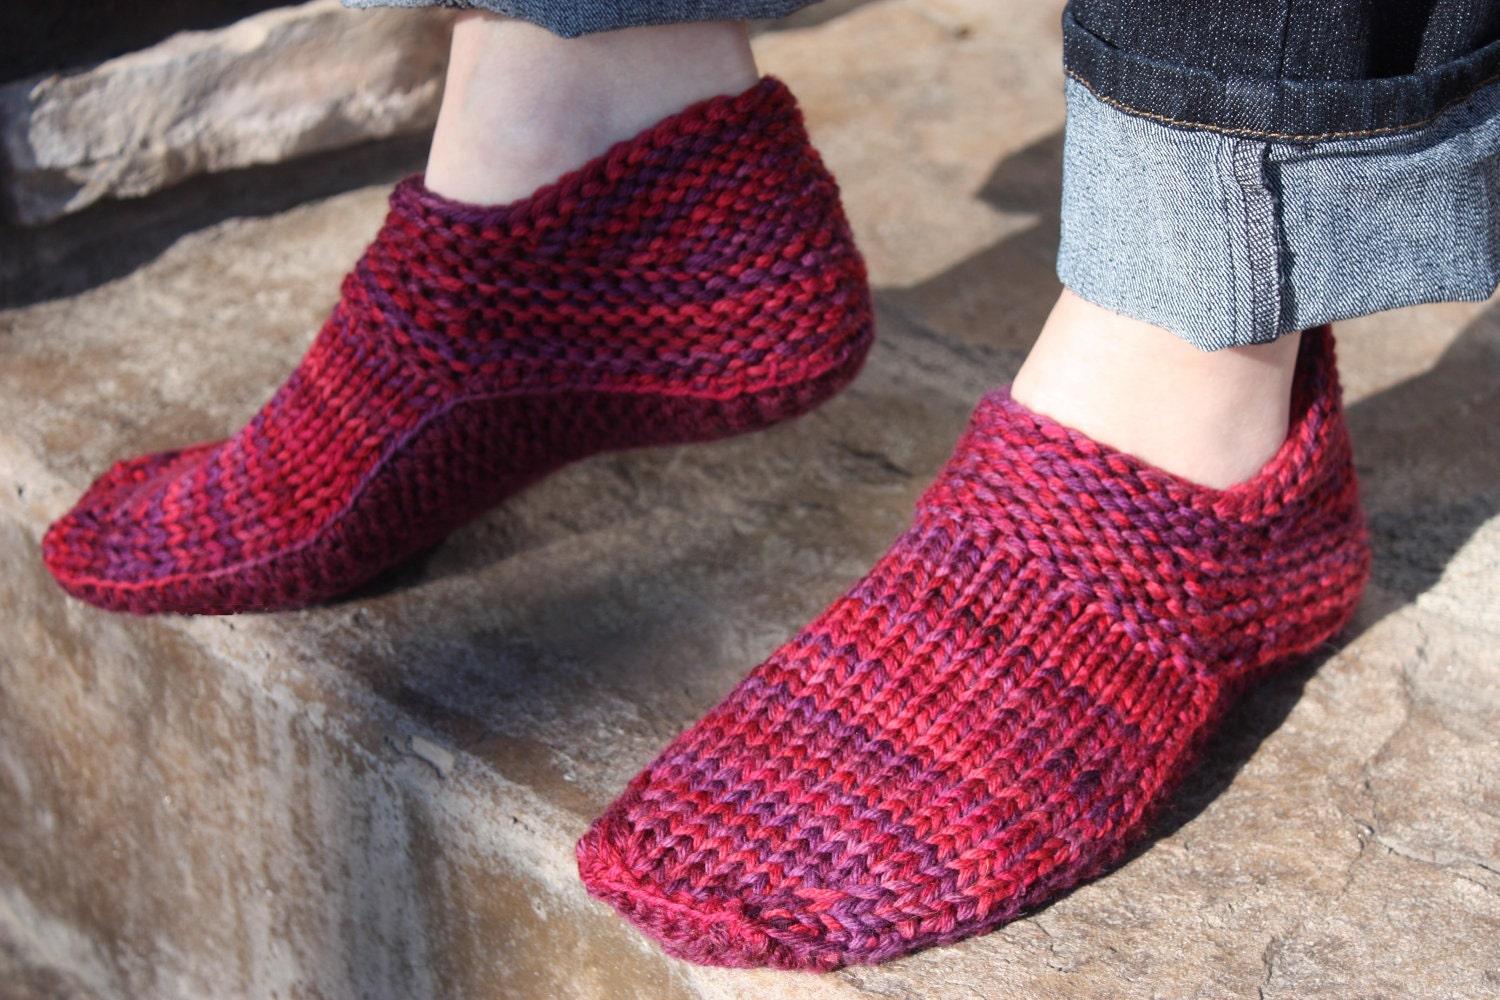 Free Knitting Pattern For Womens Slippers : Options Slippers PATTERN Knit knit w/crochet plus Felting